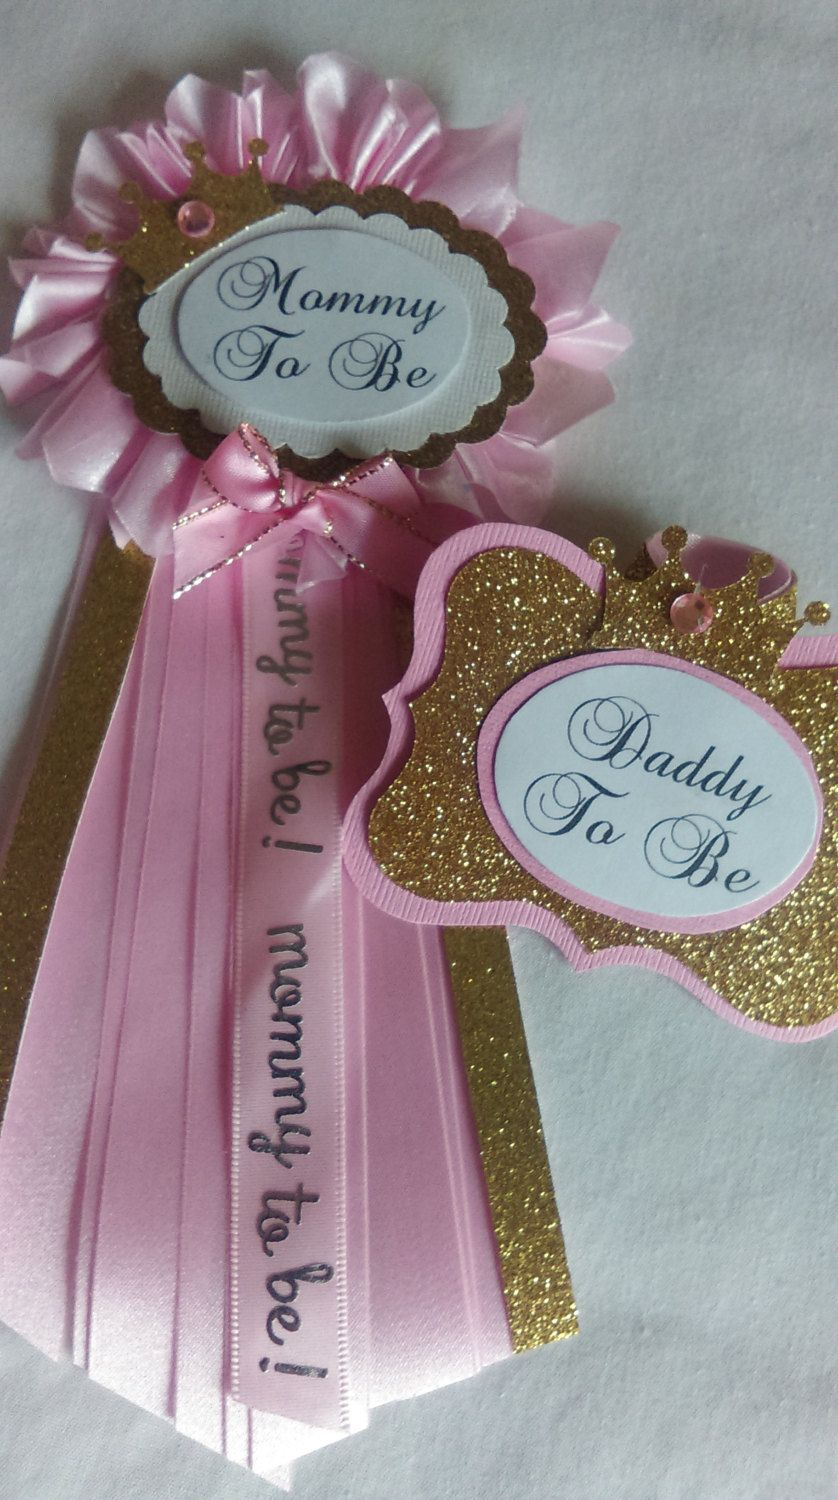 Baby Shower Pins For Mom And Dad : shower, Mommy, Daddy, Pink,, Gold,, Princess,, Ribbon, Flower, Corsage, Sho…, Shower, Themes,, Princess